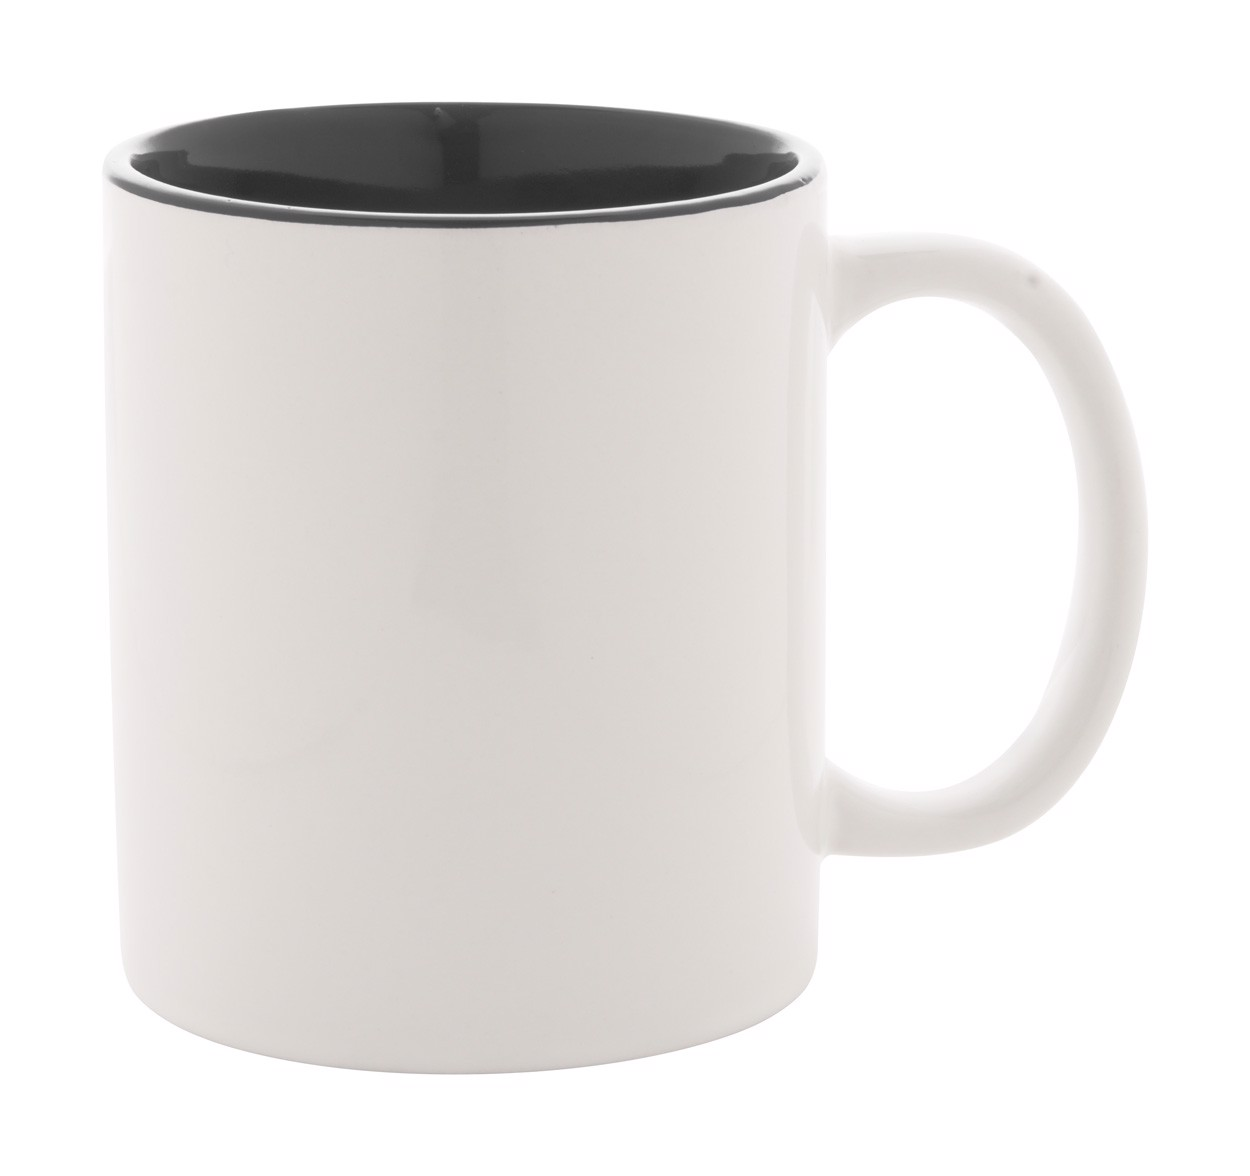 Mug Loom - White / Black